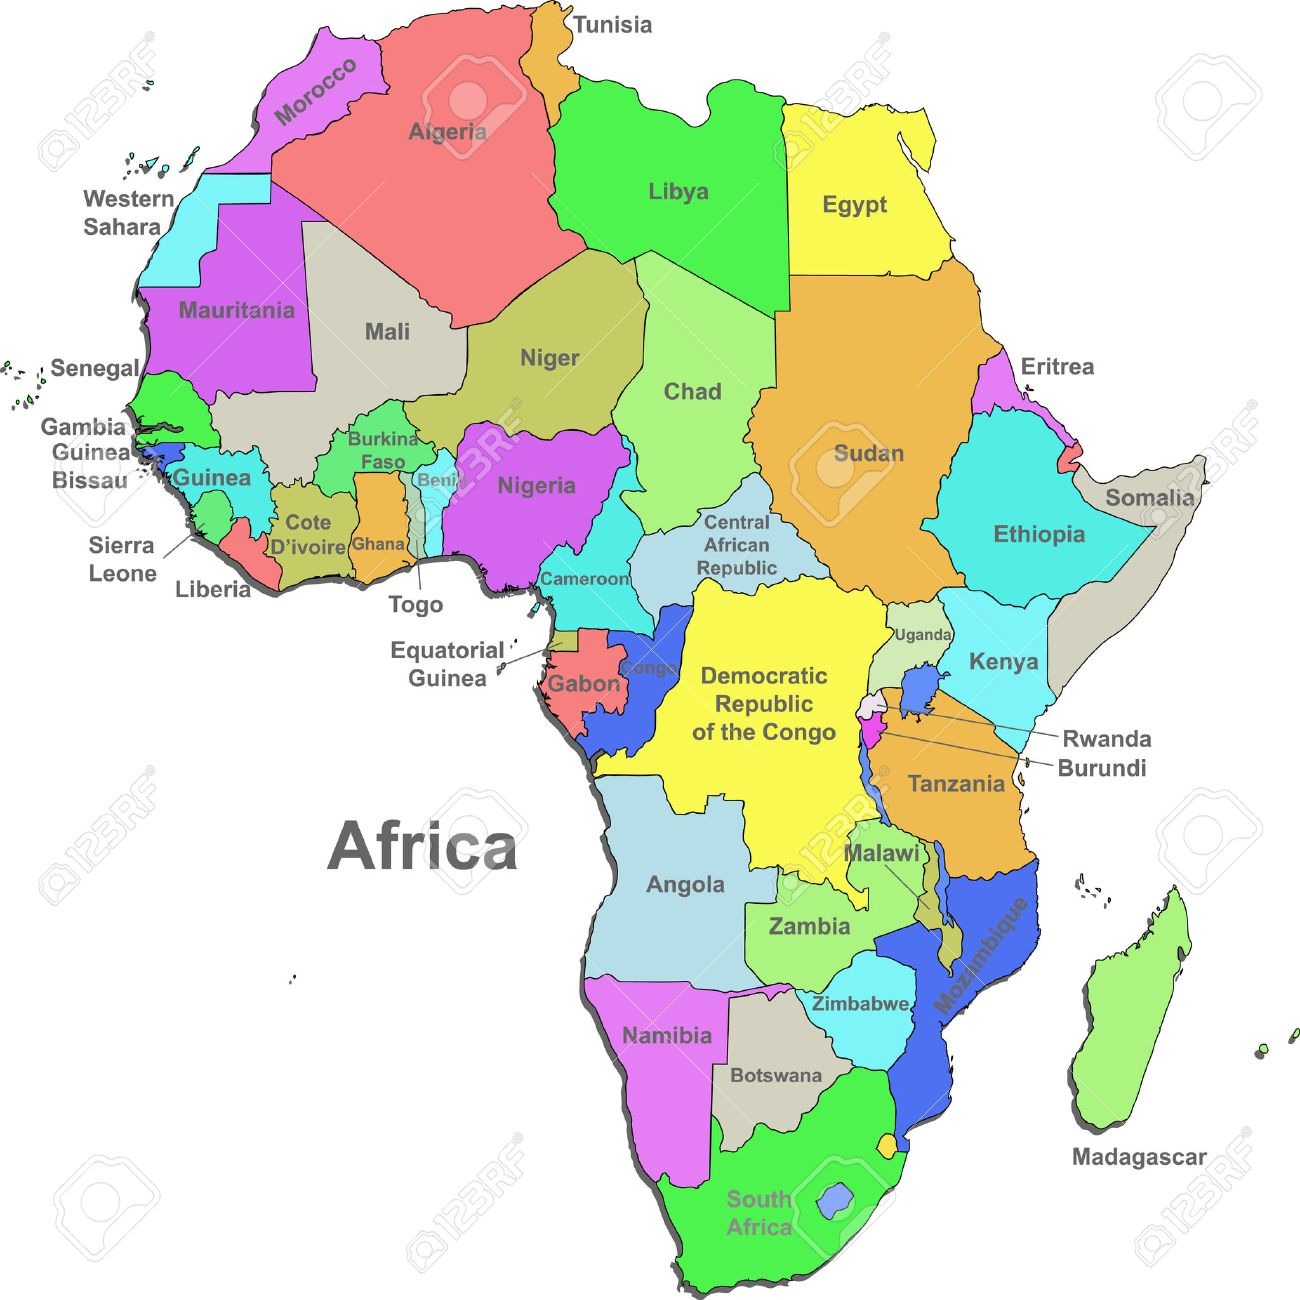 Color Map Of Africa With Countries On A White Background Royalty - Maps of africa